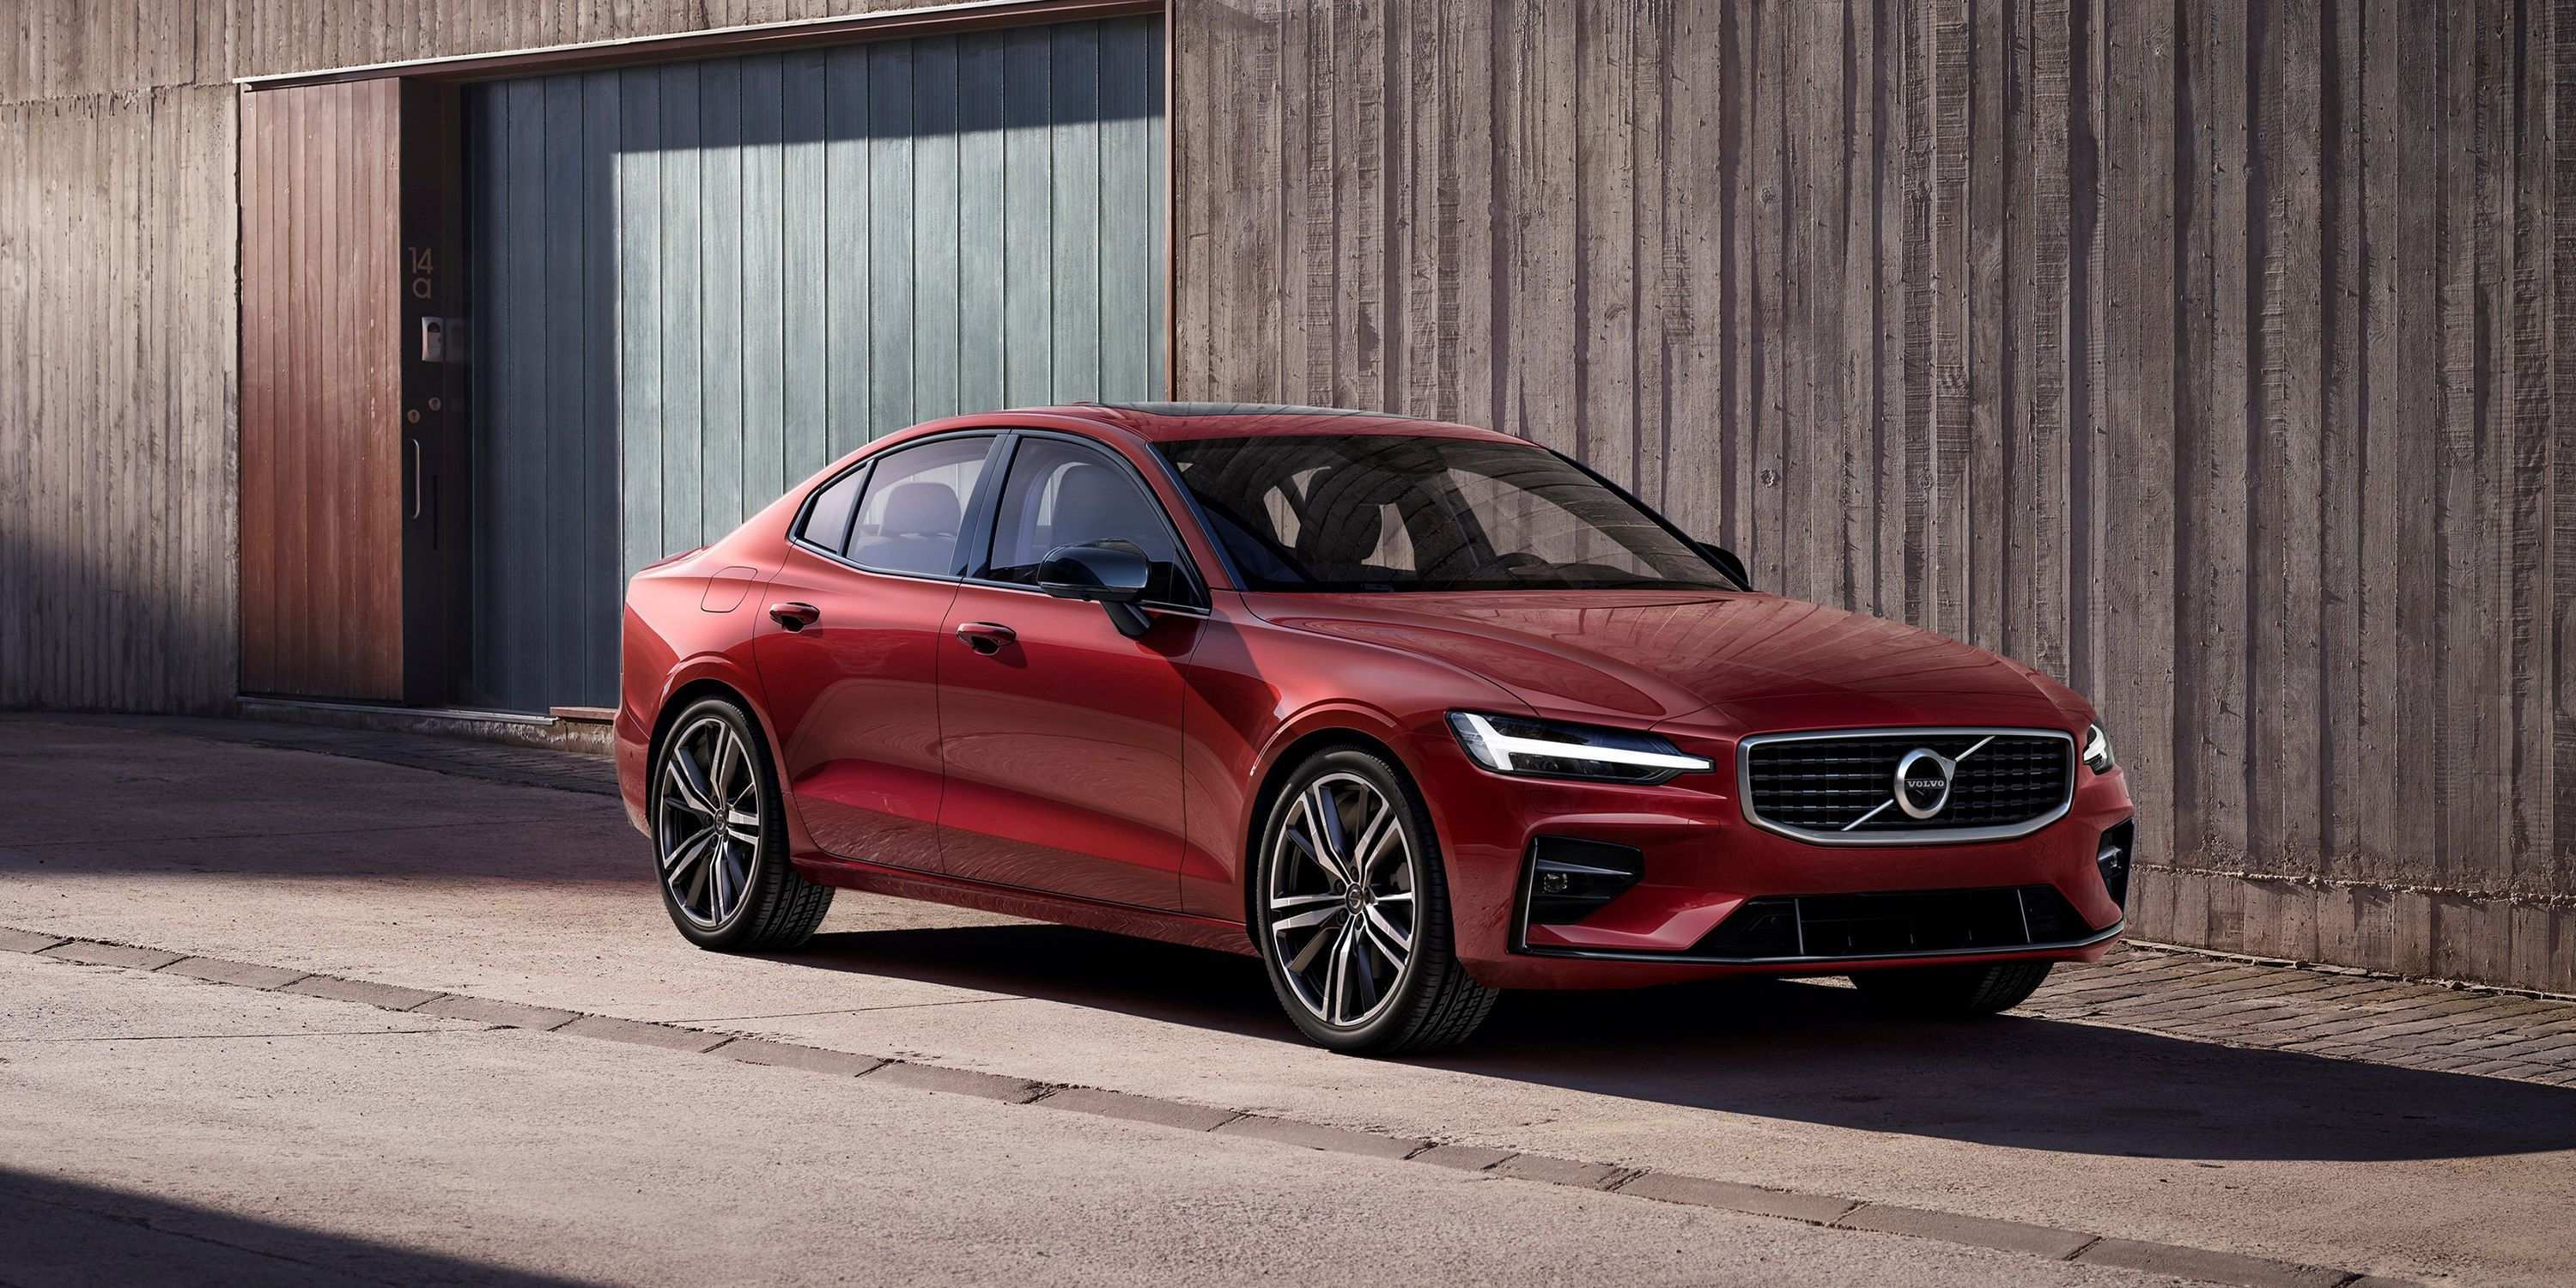 56 Best Review 2020 Volvo S60 History for 2020 Volvo S60